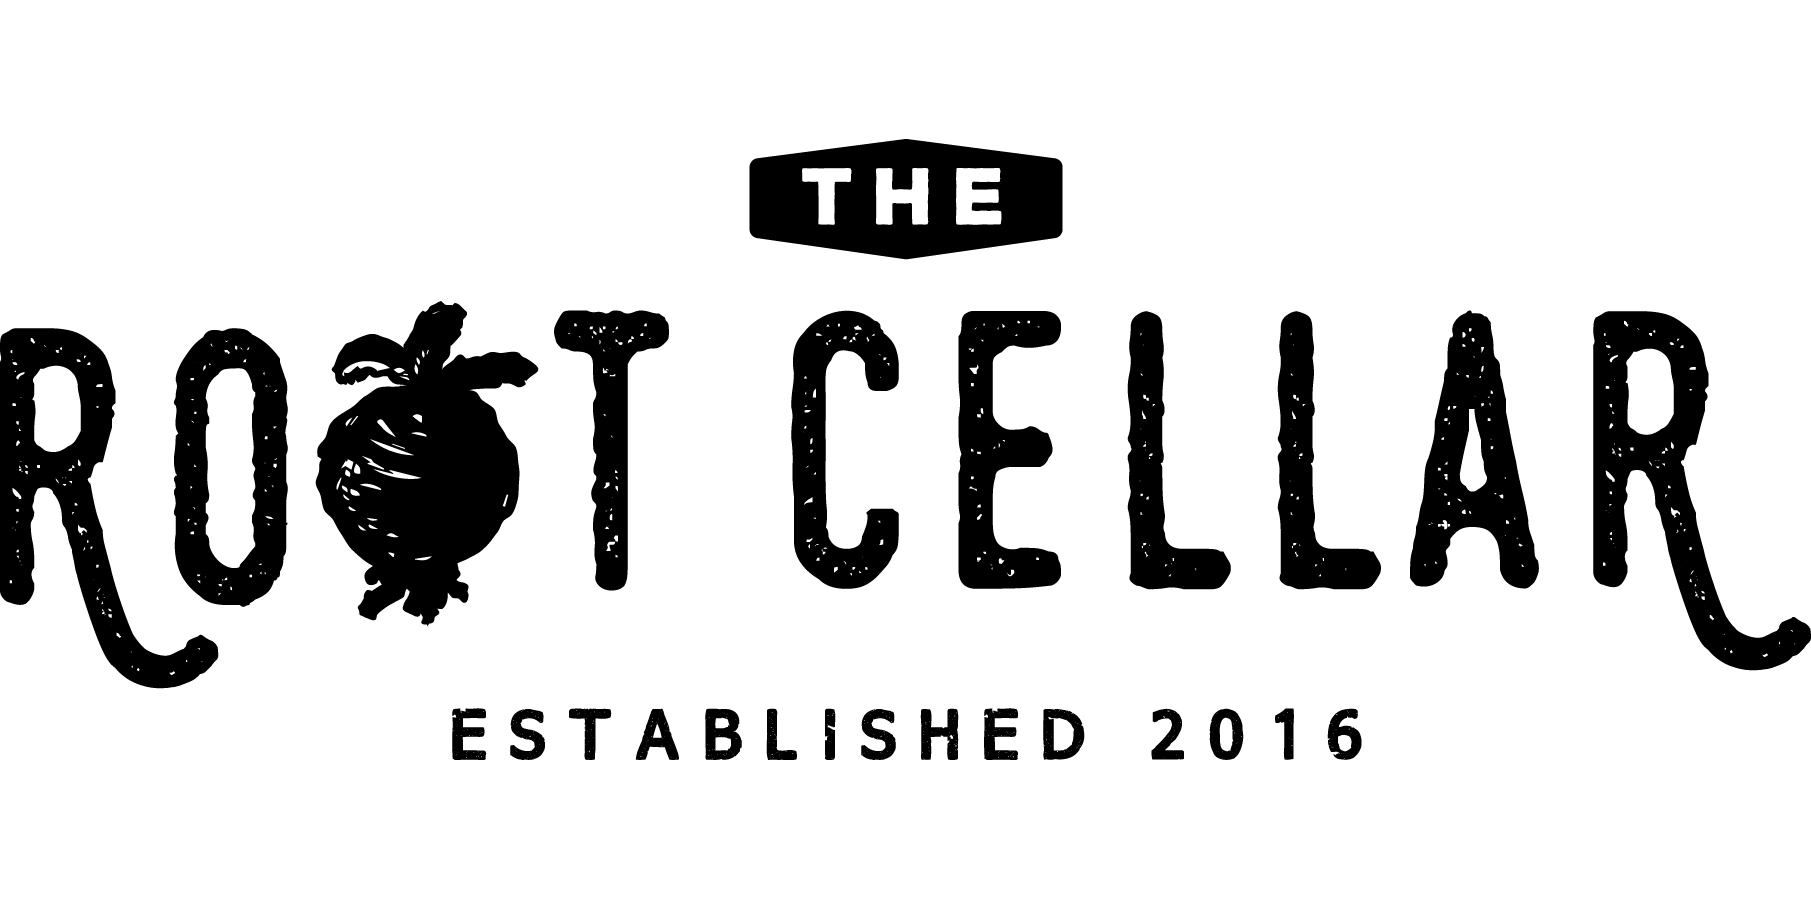 The Root Cellar coming very soon to Lexington  sc 1 st  ADCO & The Root Cellar coming very soon to Lexington | ADCO